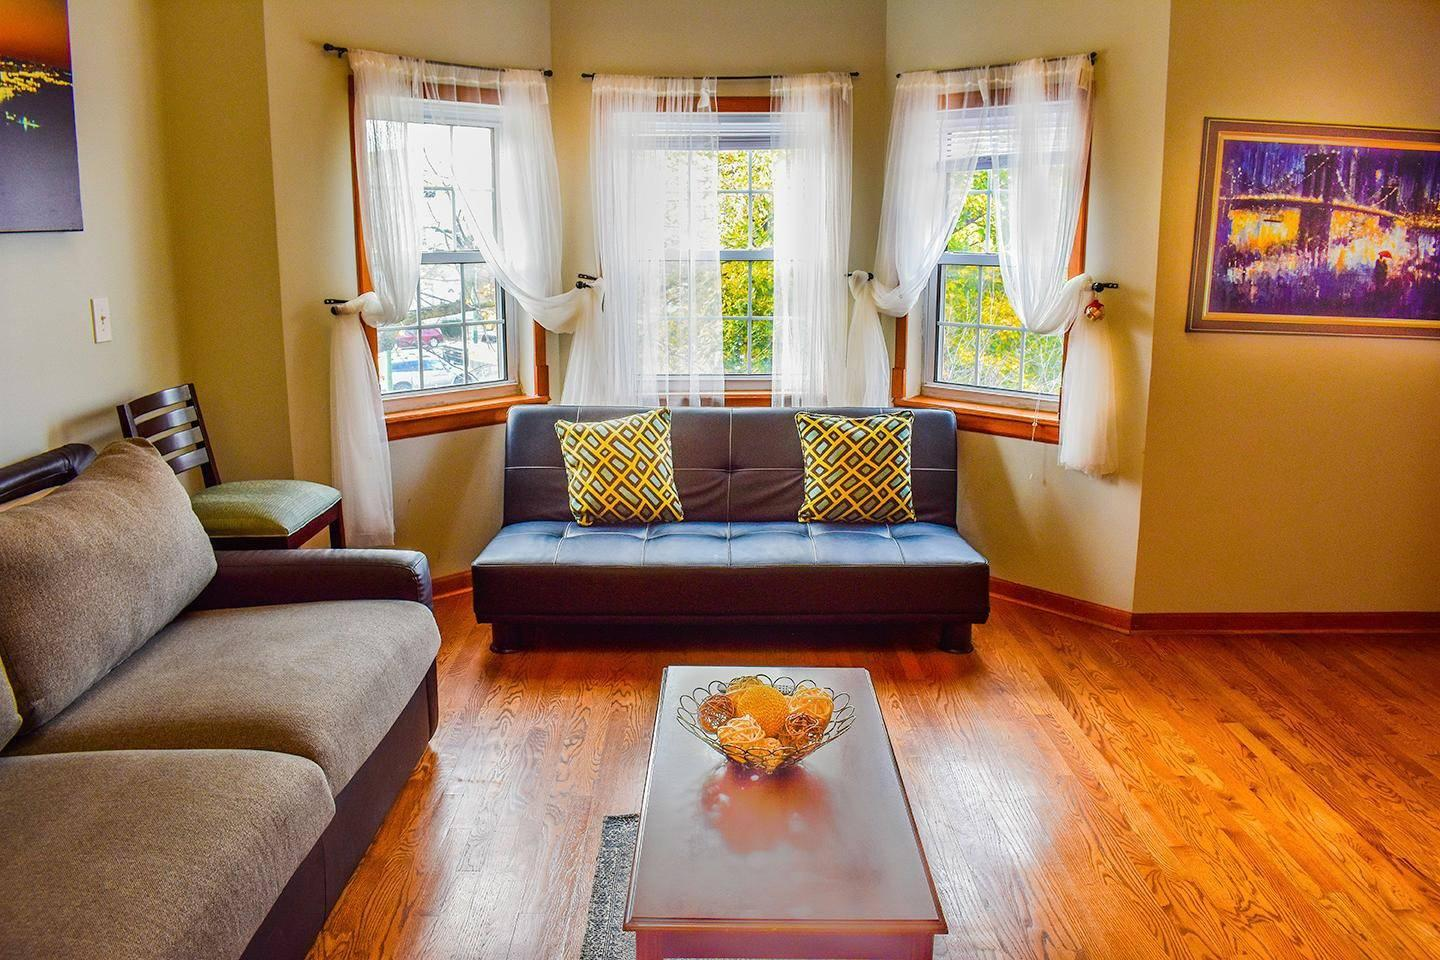 (#1 Reviewed) Stunning 2-Level Mini-Mansion w/ Patio and Free Parking.